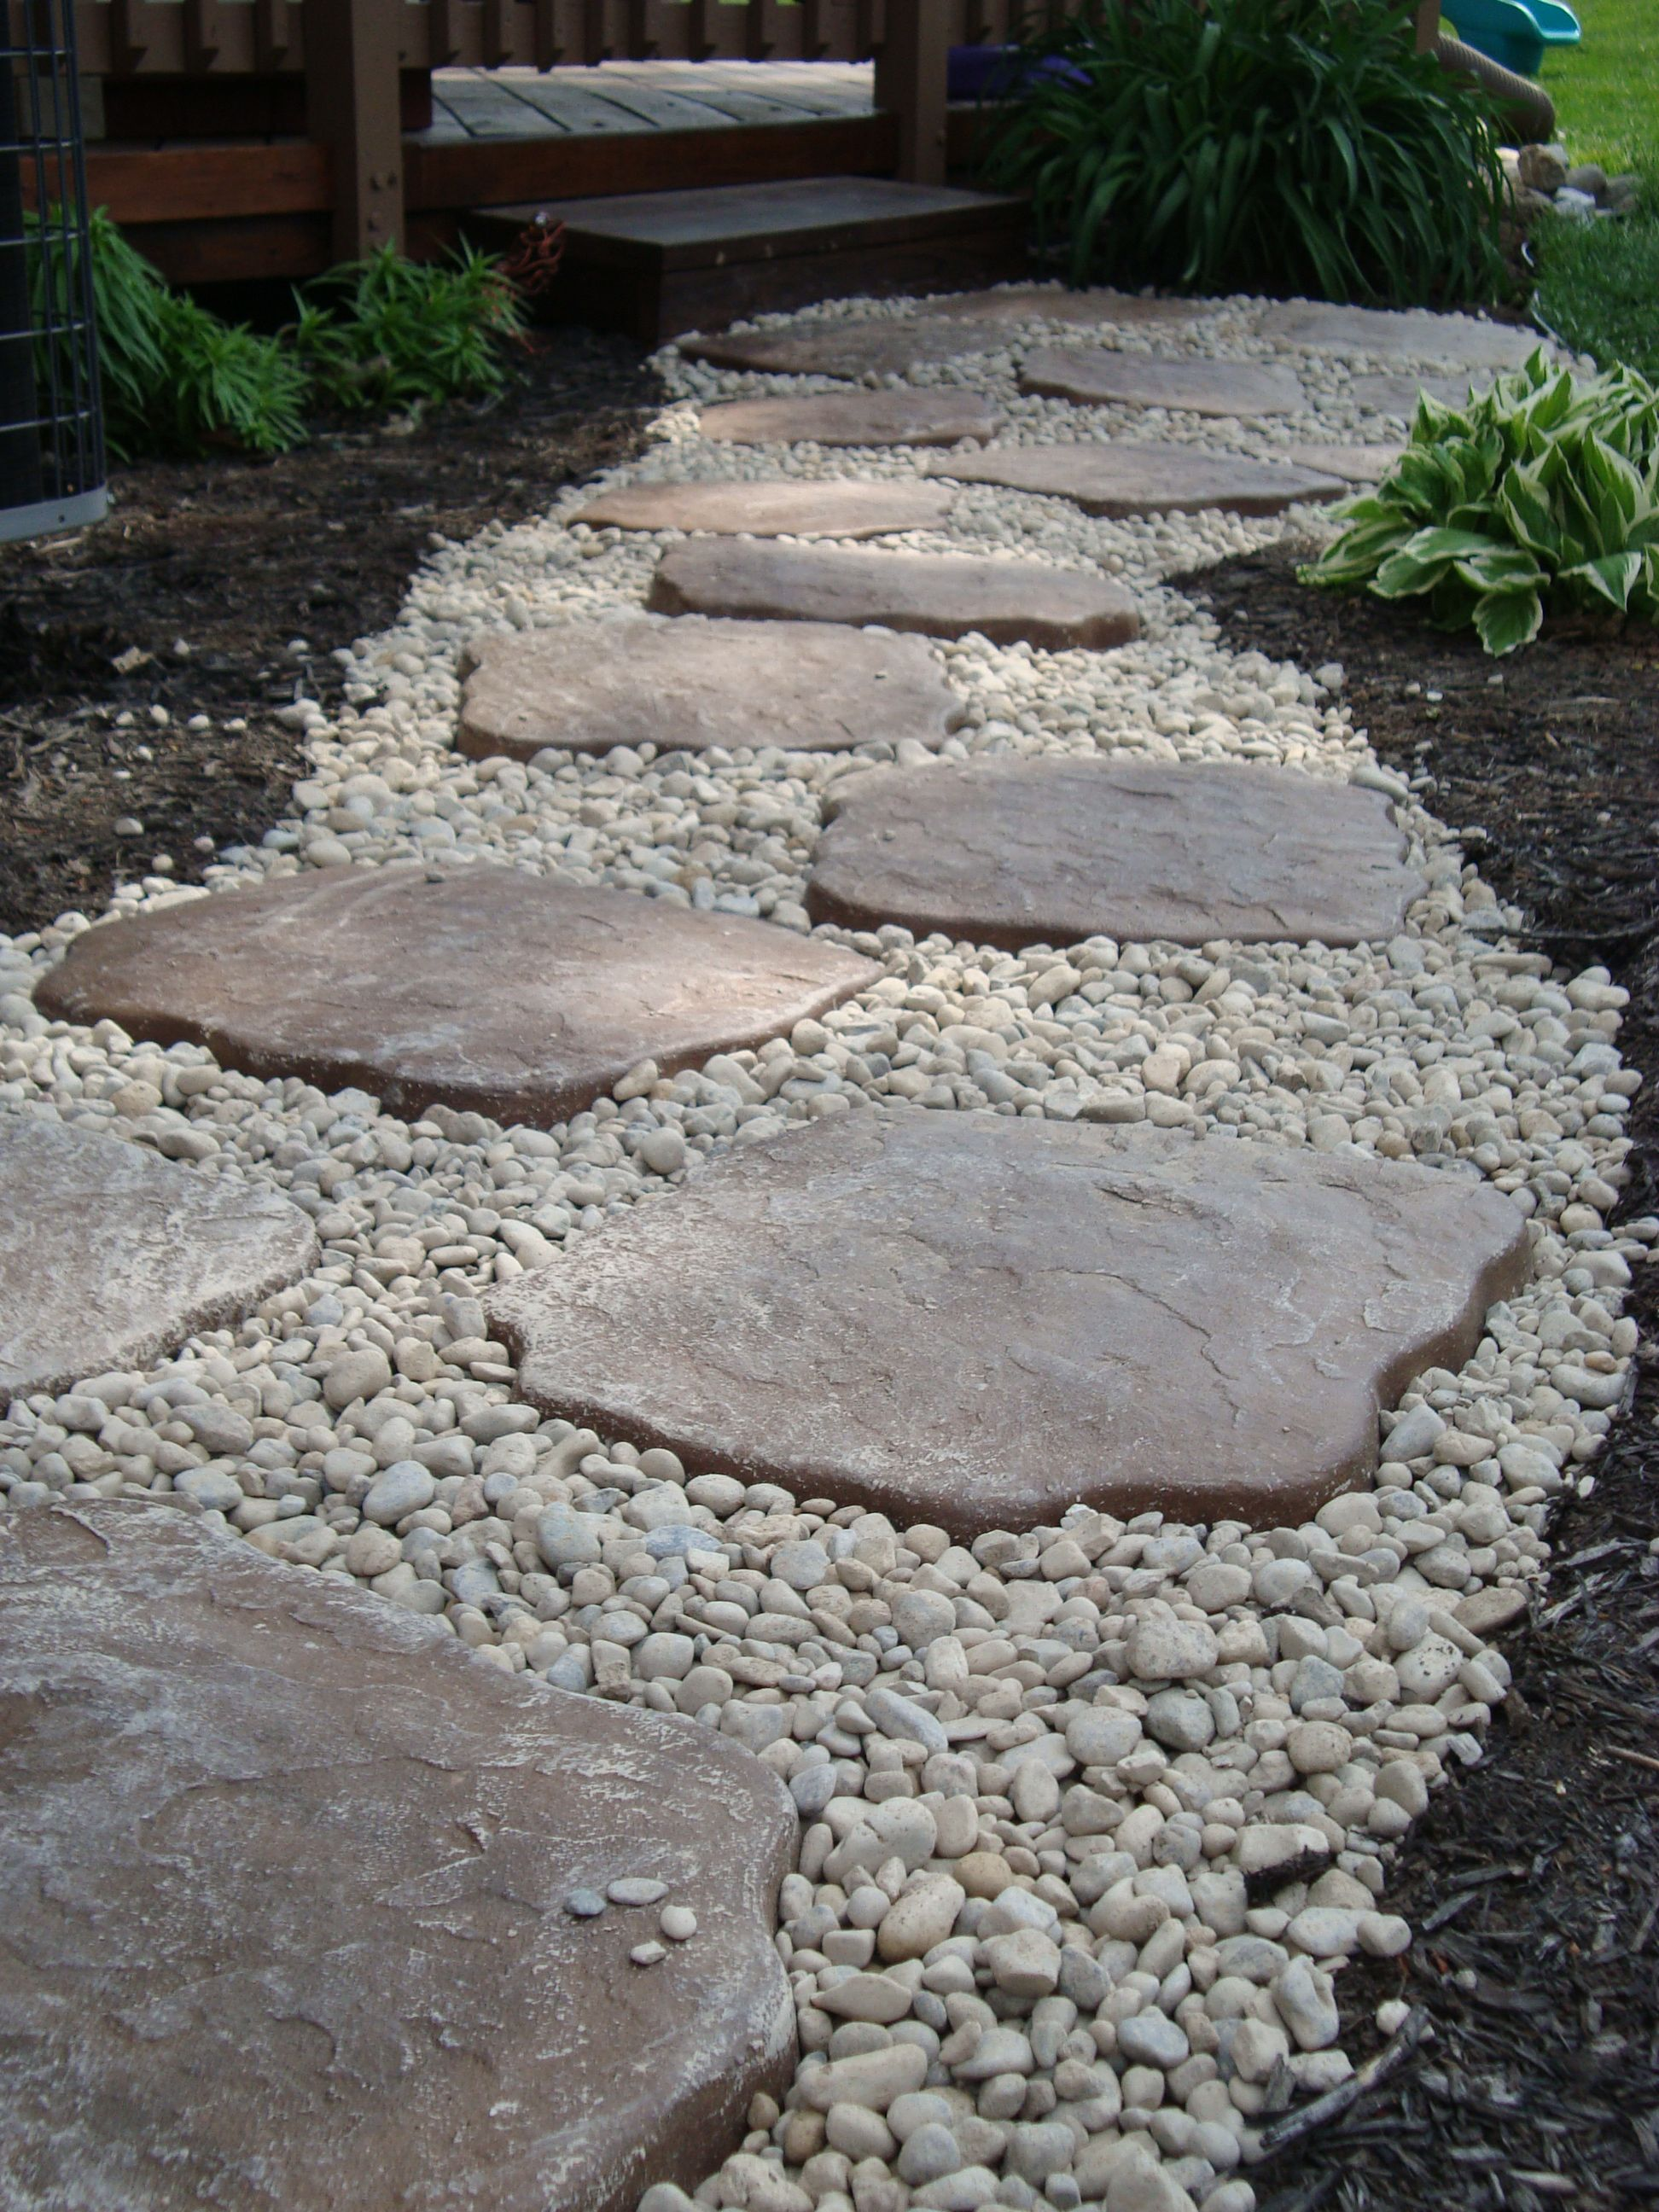 Landscaping i did diy use edging to contain small river for Garden landscaping stones